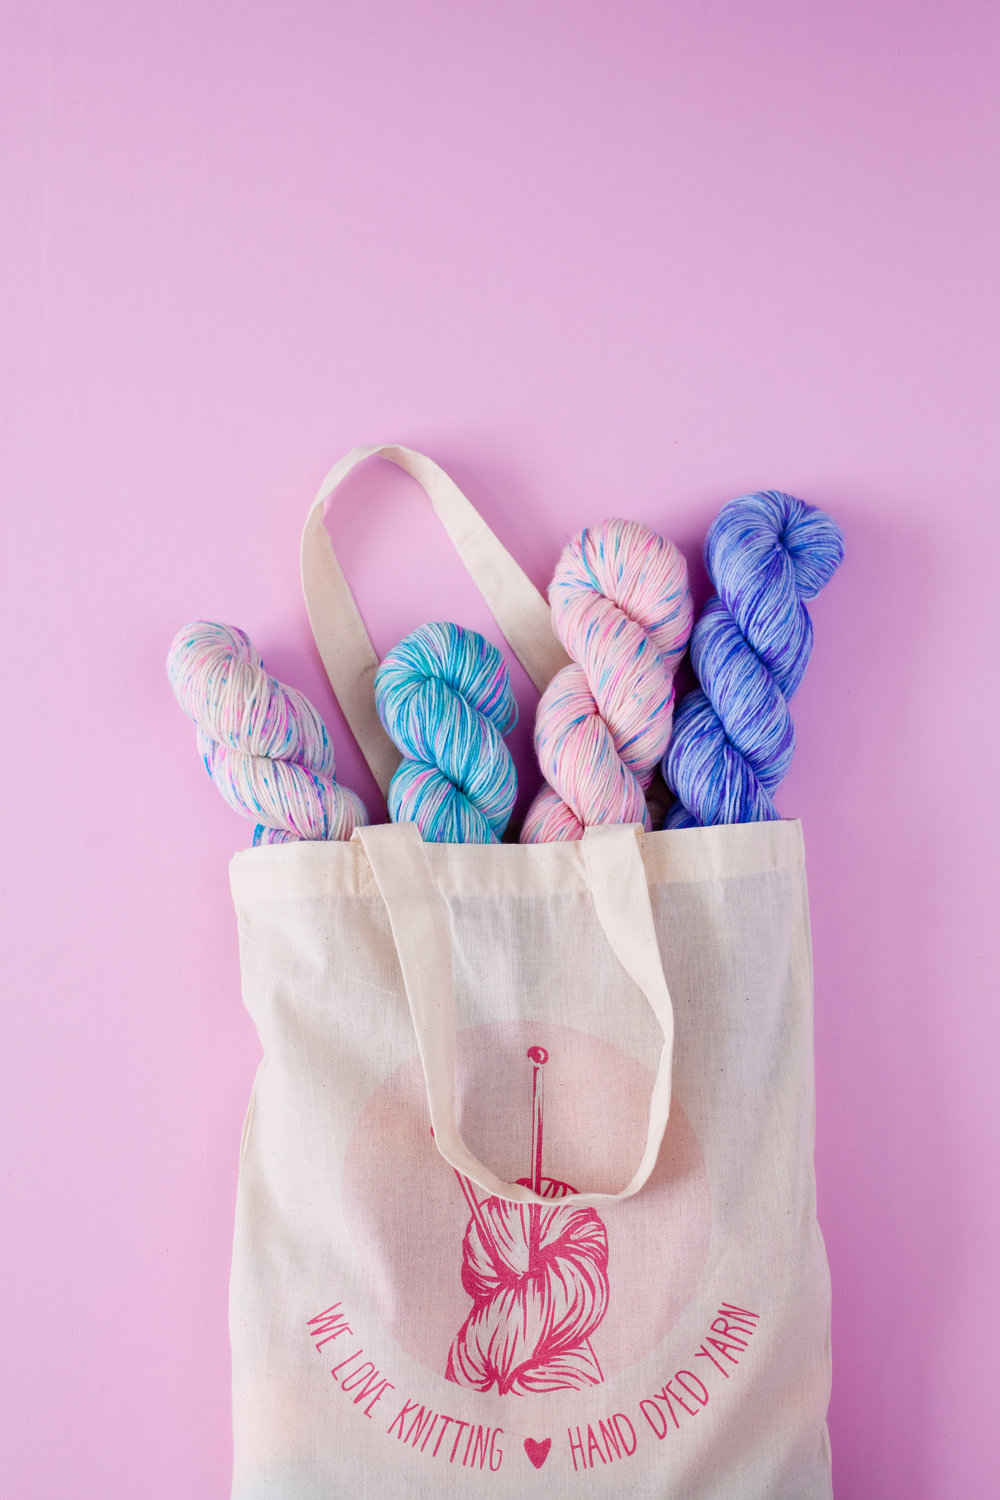 Starting a creative business in the fiber industry - We Love Knitting